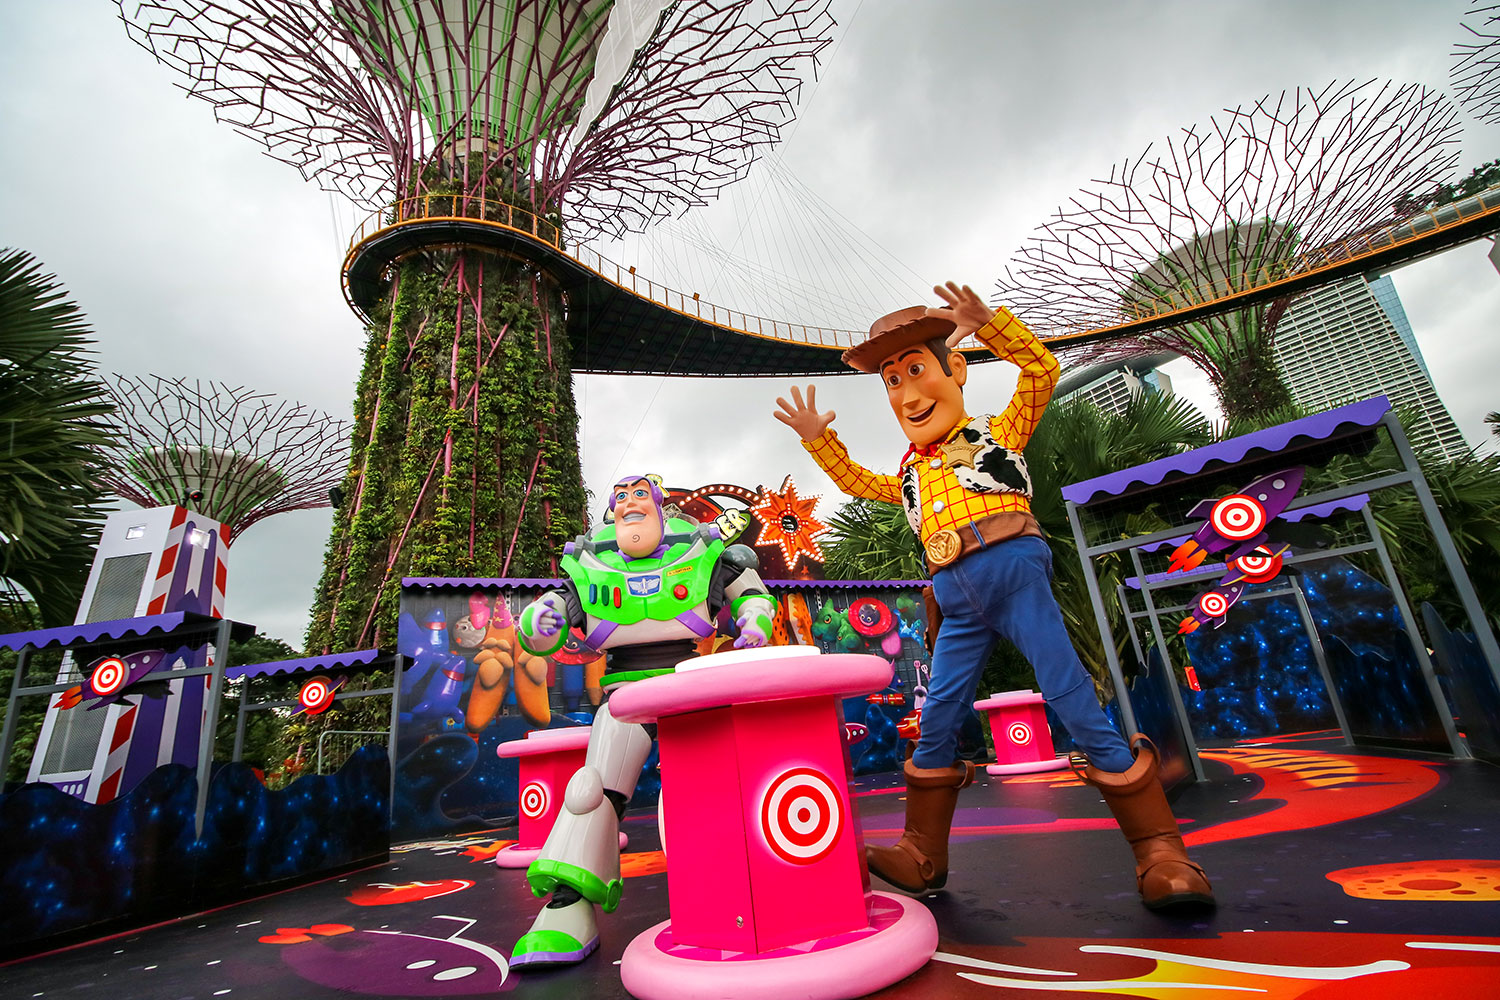 CHILDREN'S FESTIVAL 2019 FEATURING DISNEY & PIXAR'S TOY STORY 4 - WOODY & BUZZ LIGHTYEAR